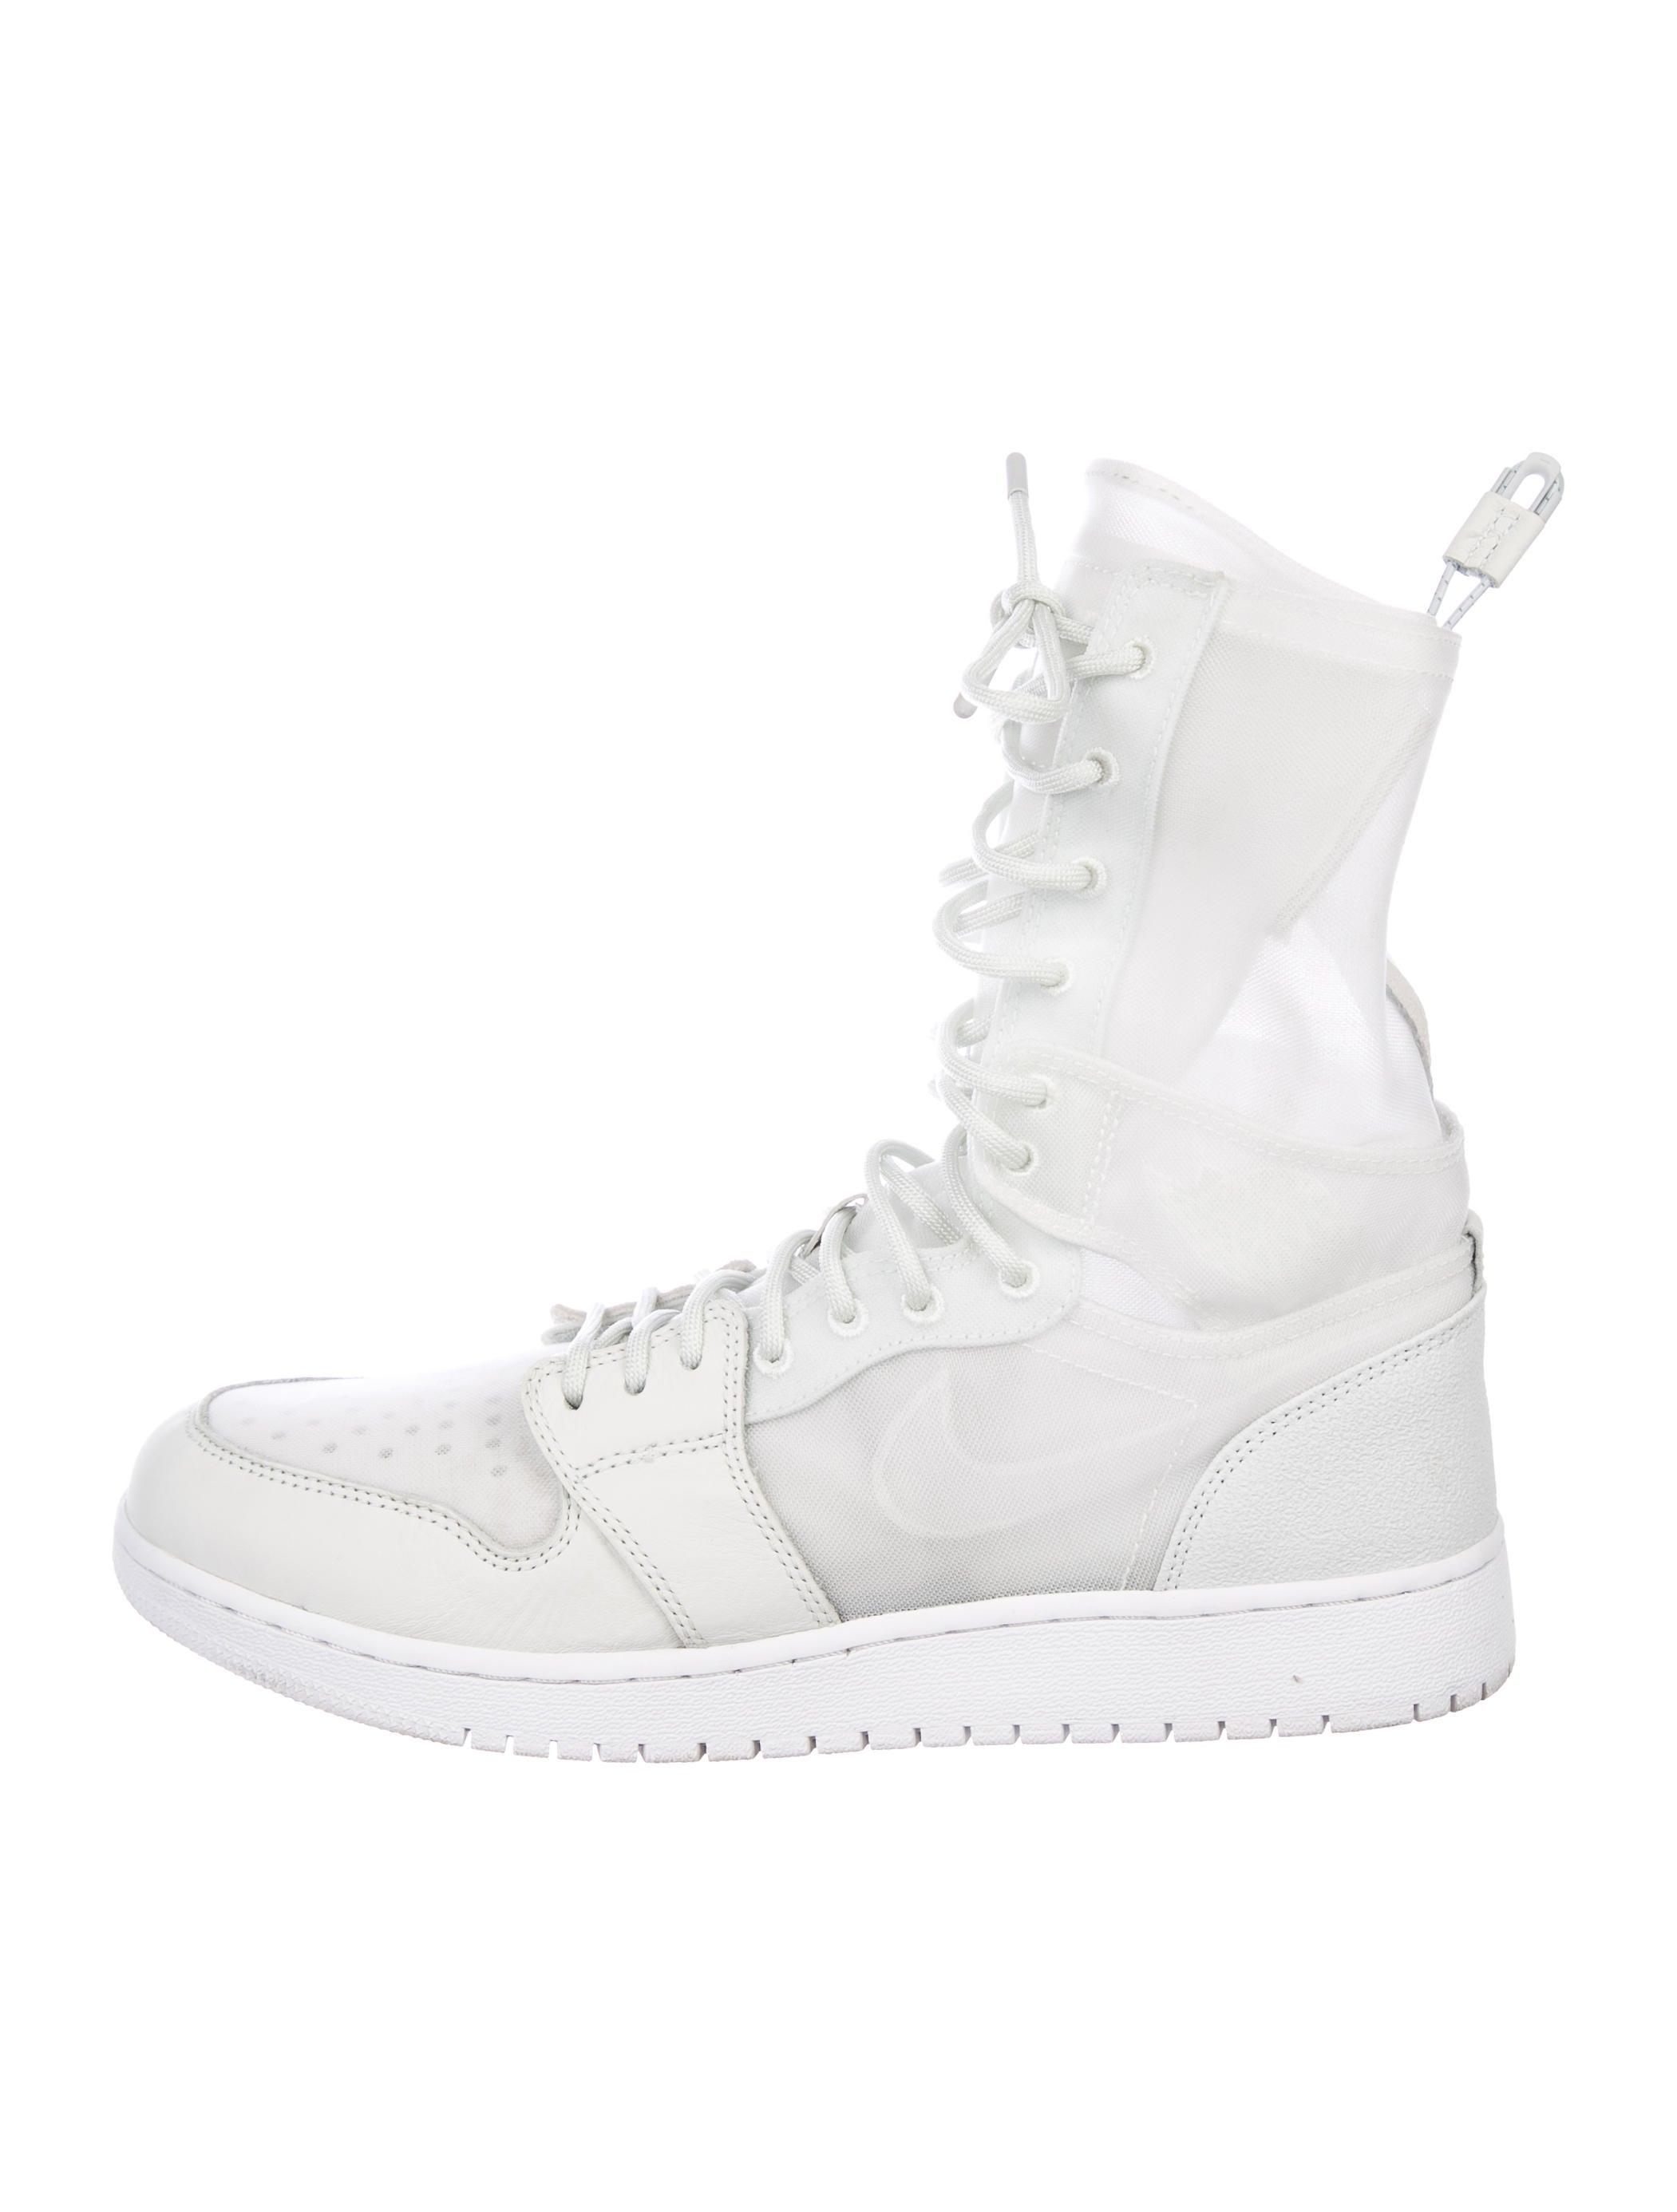 Nike Explorer High-Top Sneakers discount 2014 discount reliable Anf3EhQ8J